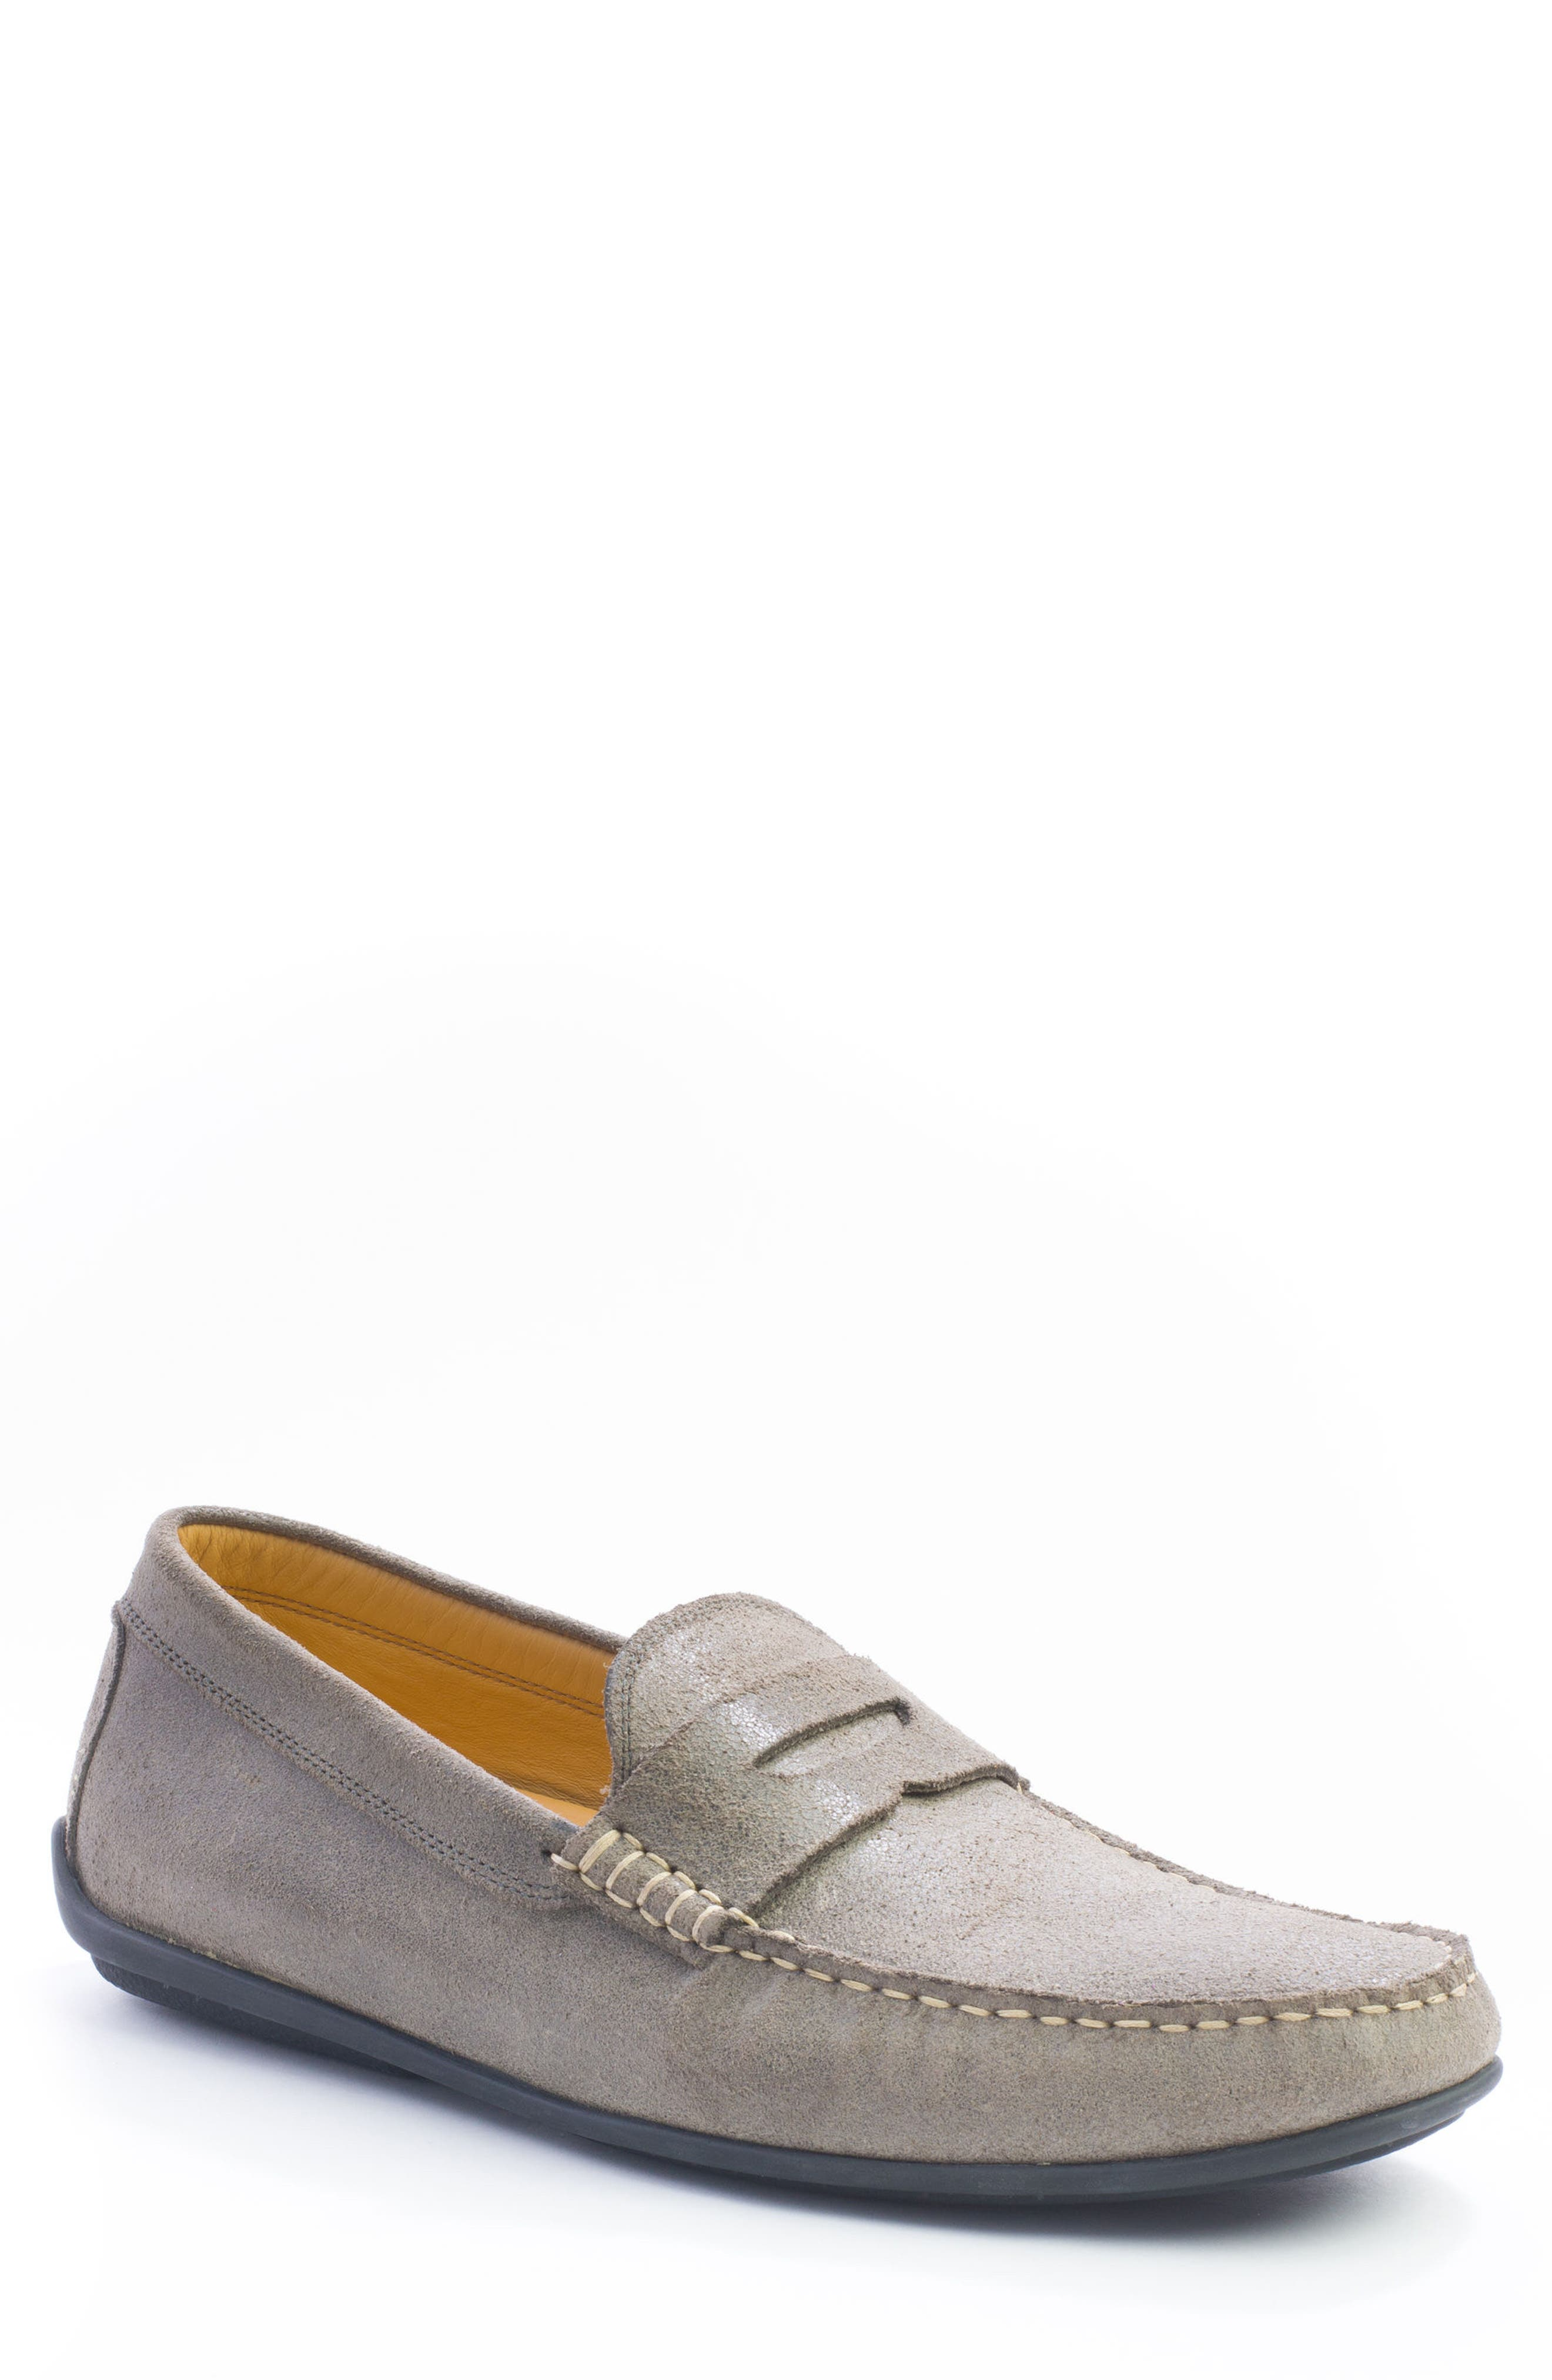 Barretts Penny Loafer,                         Main,                         color, GREY